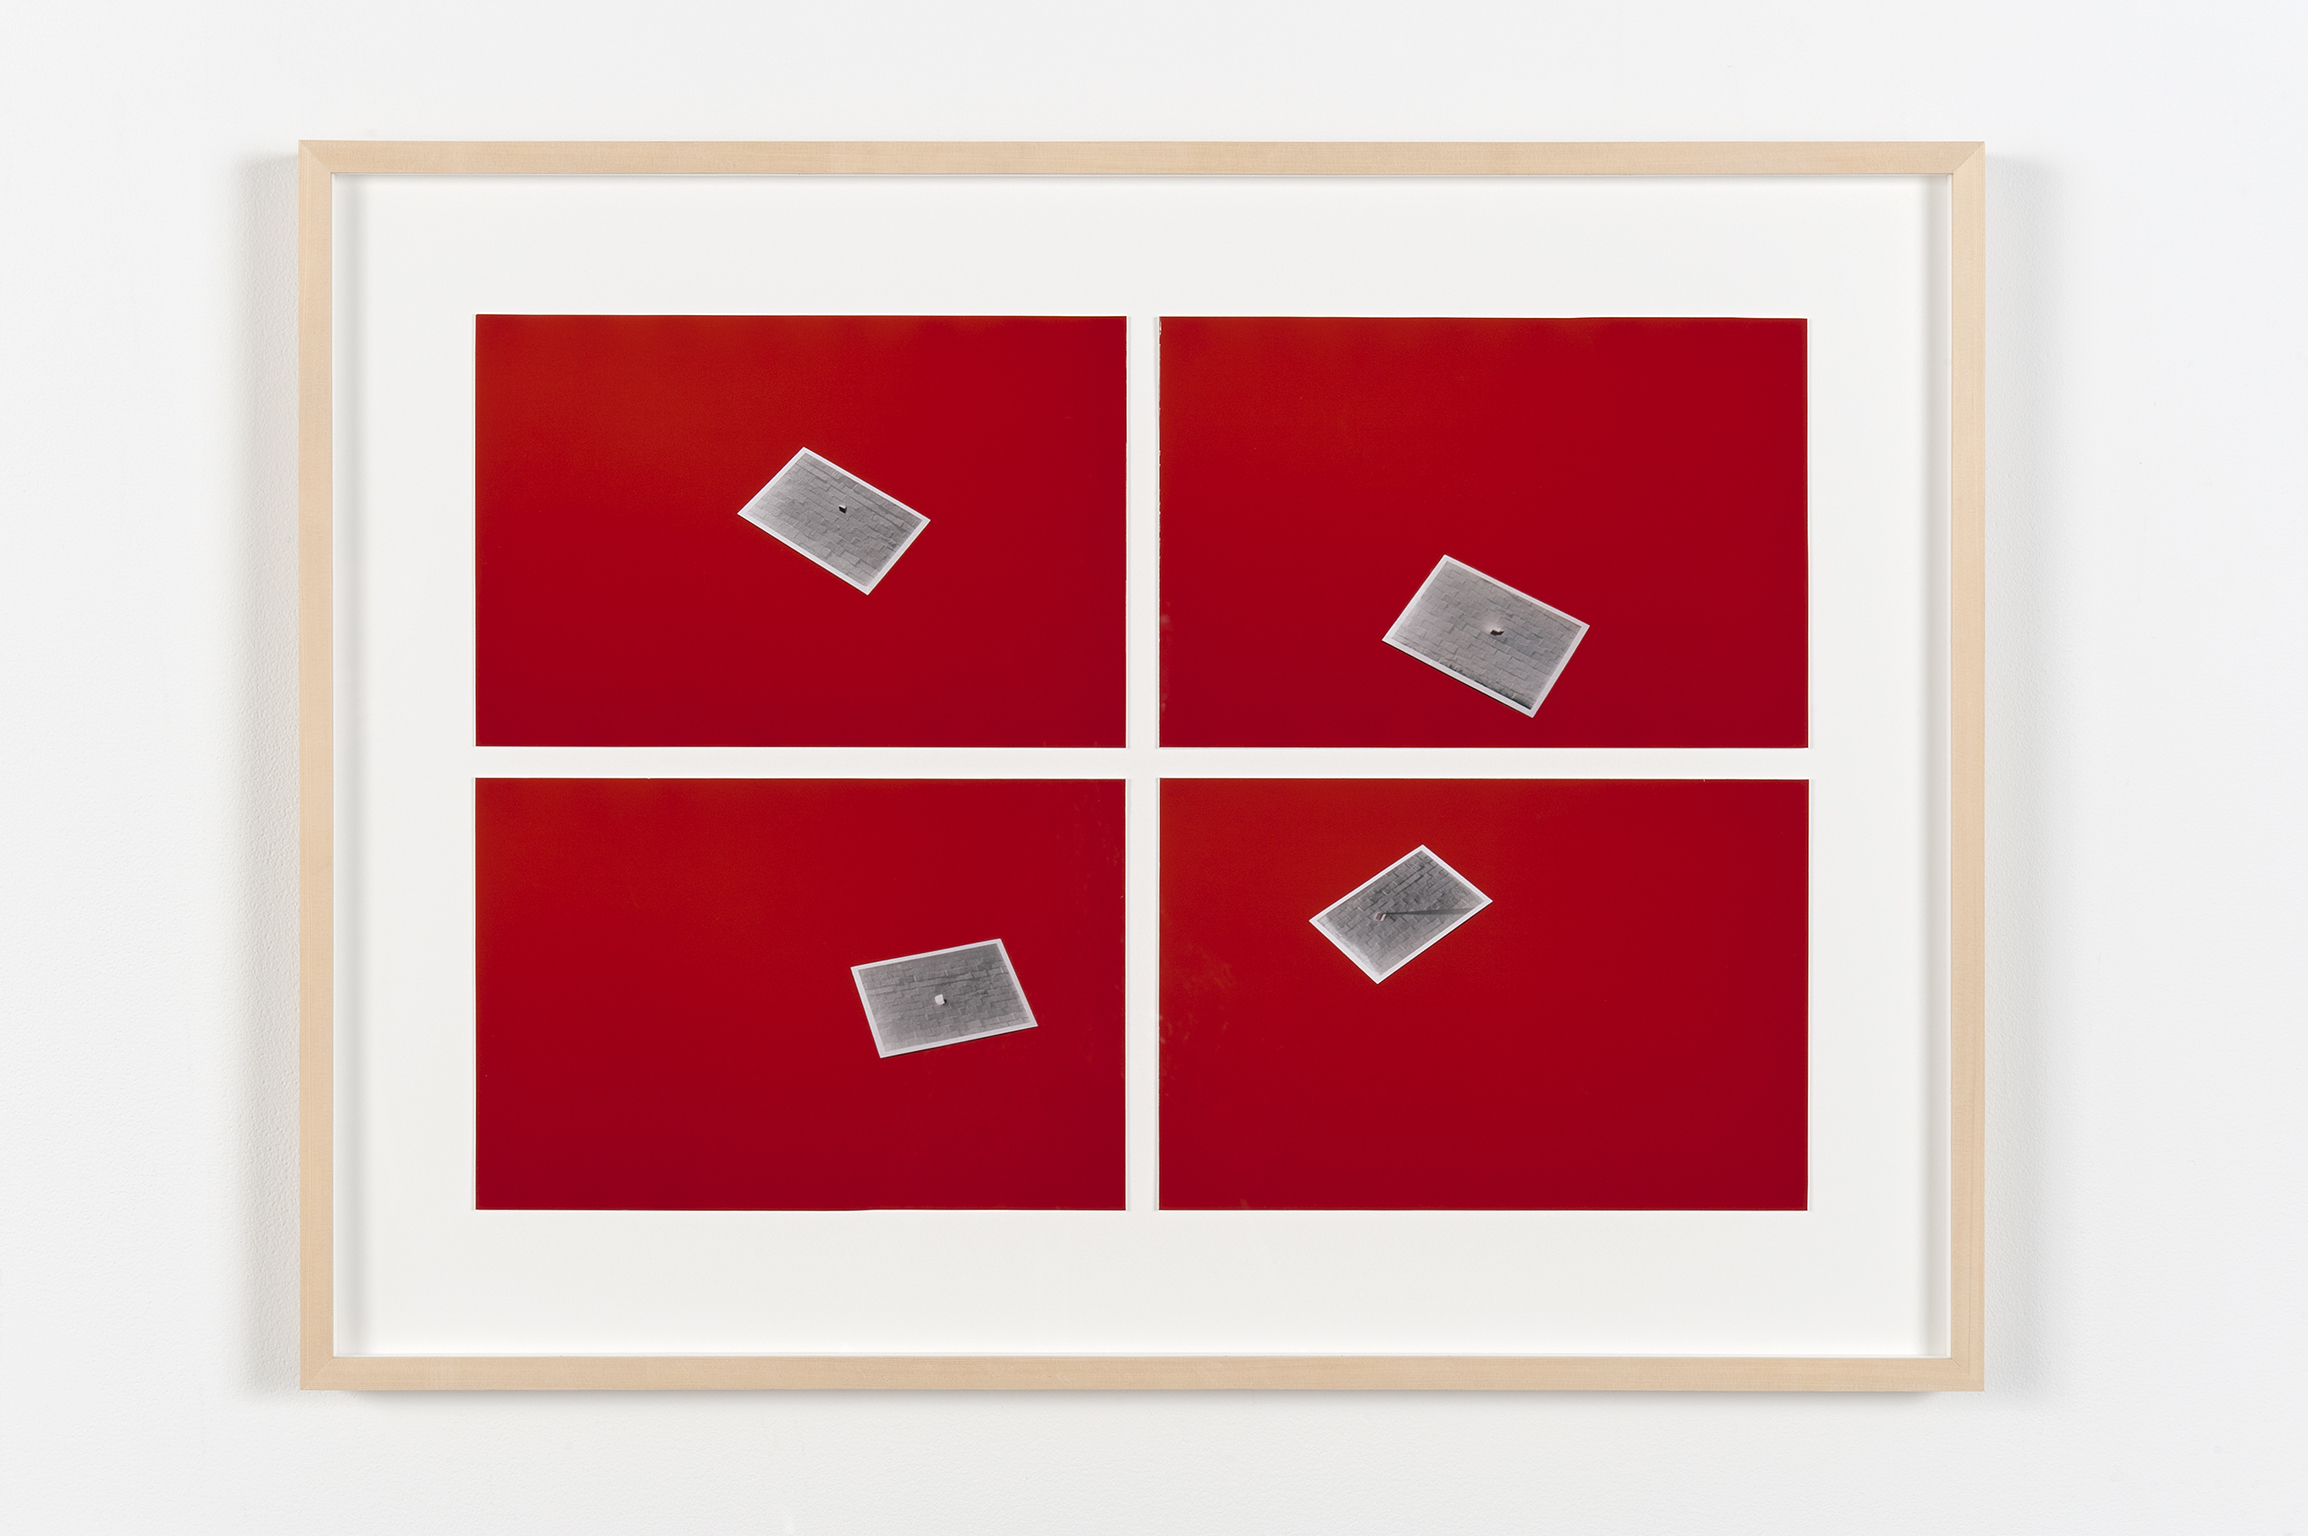 Robert Kleyn, Untitled Photographs of Photographs, 1975–2011, 4 colour prints, 23 x 30 in. (58 x 78 cm) by